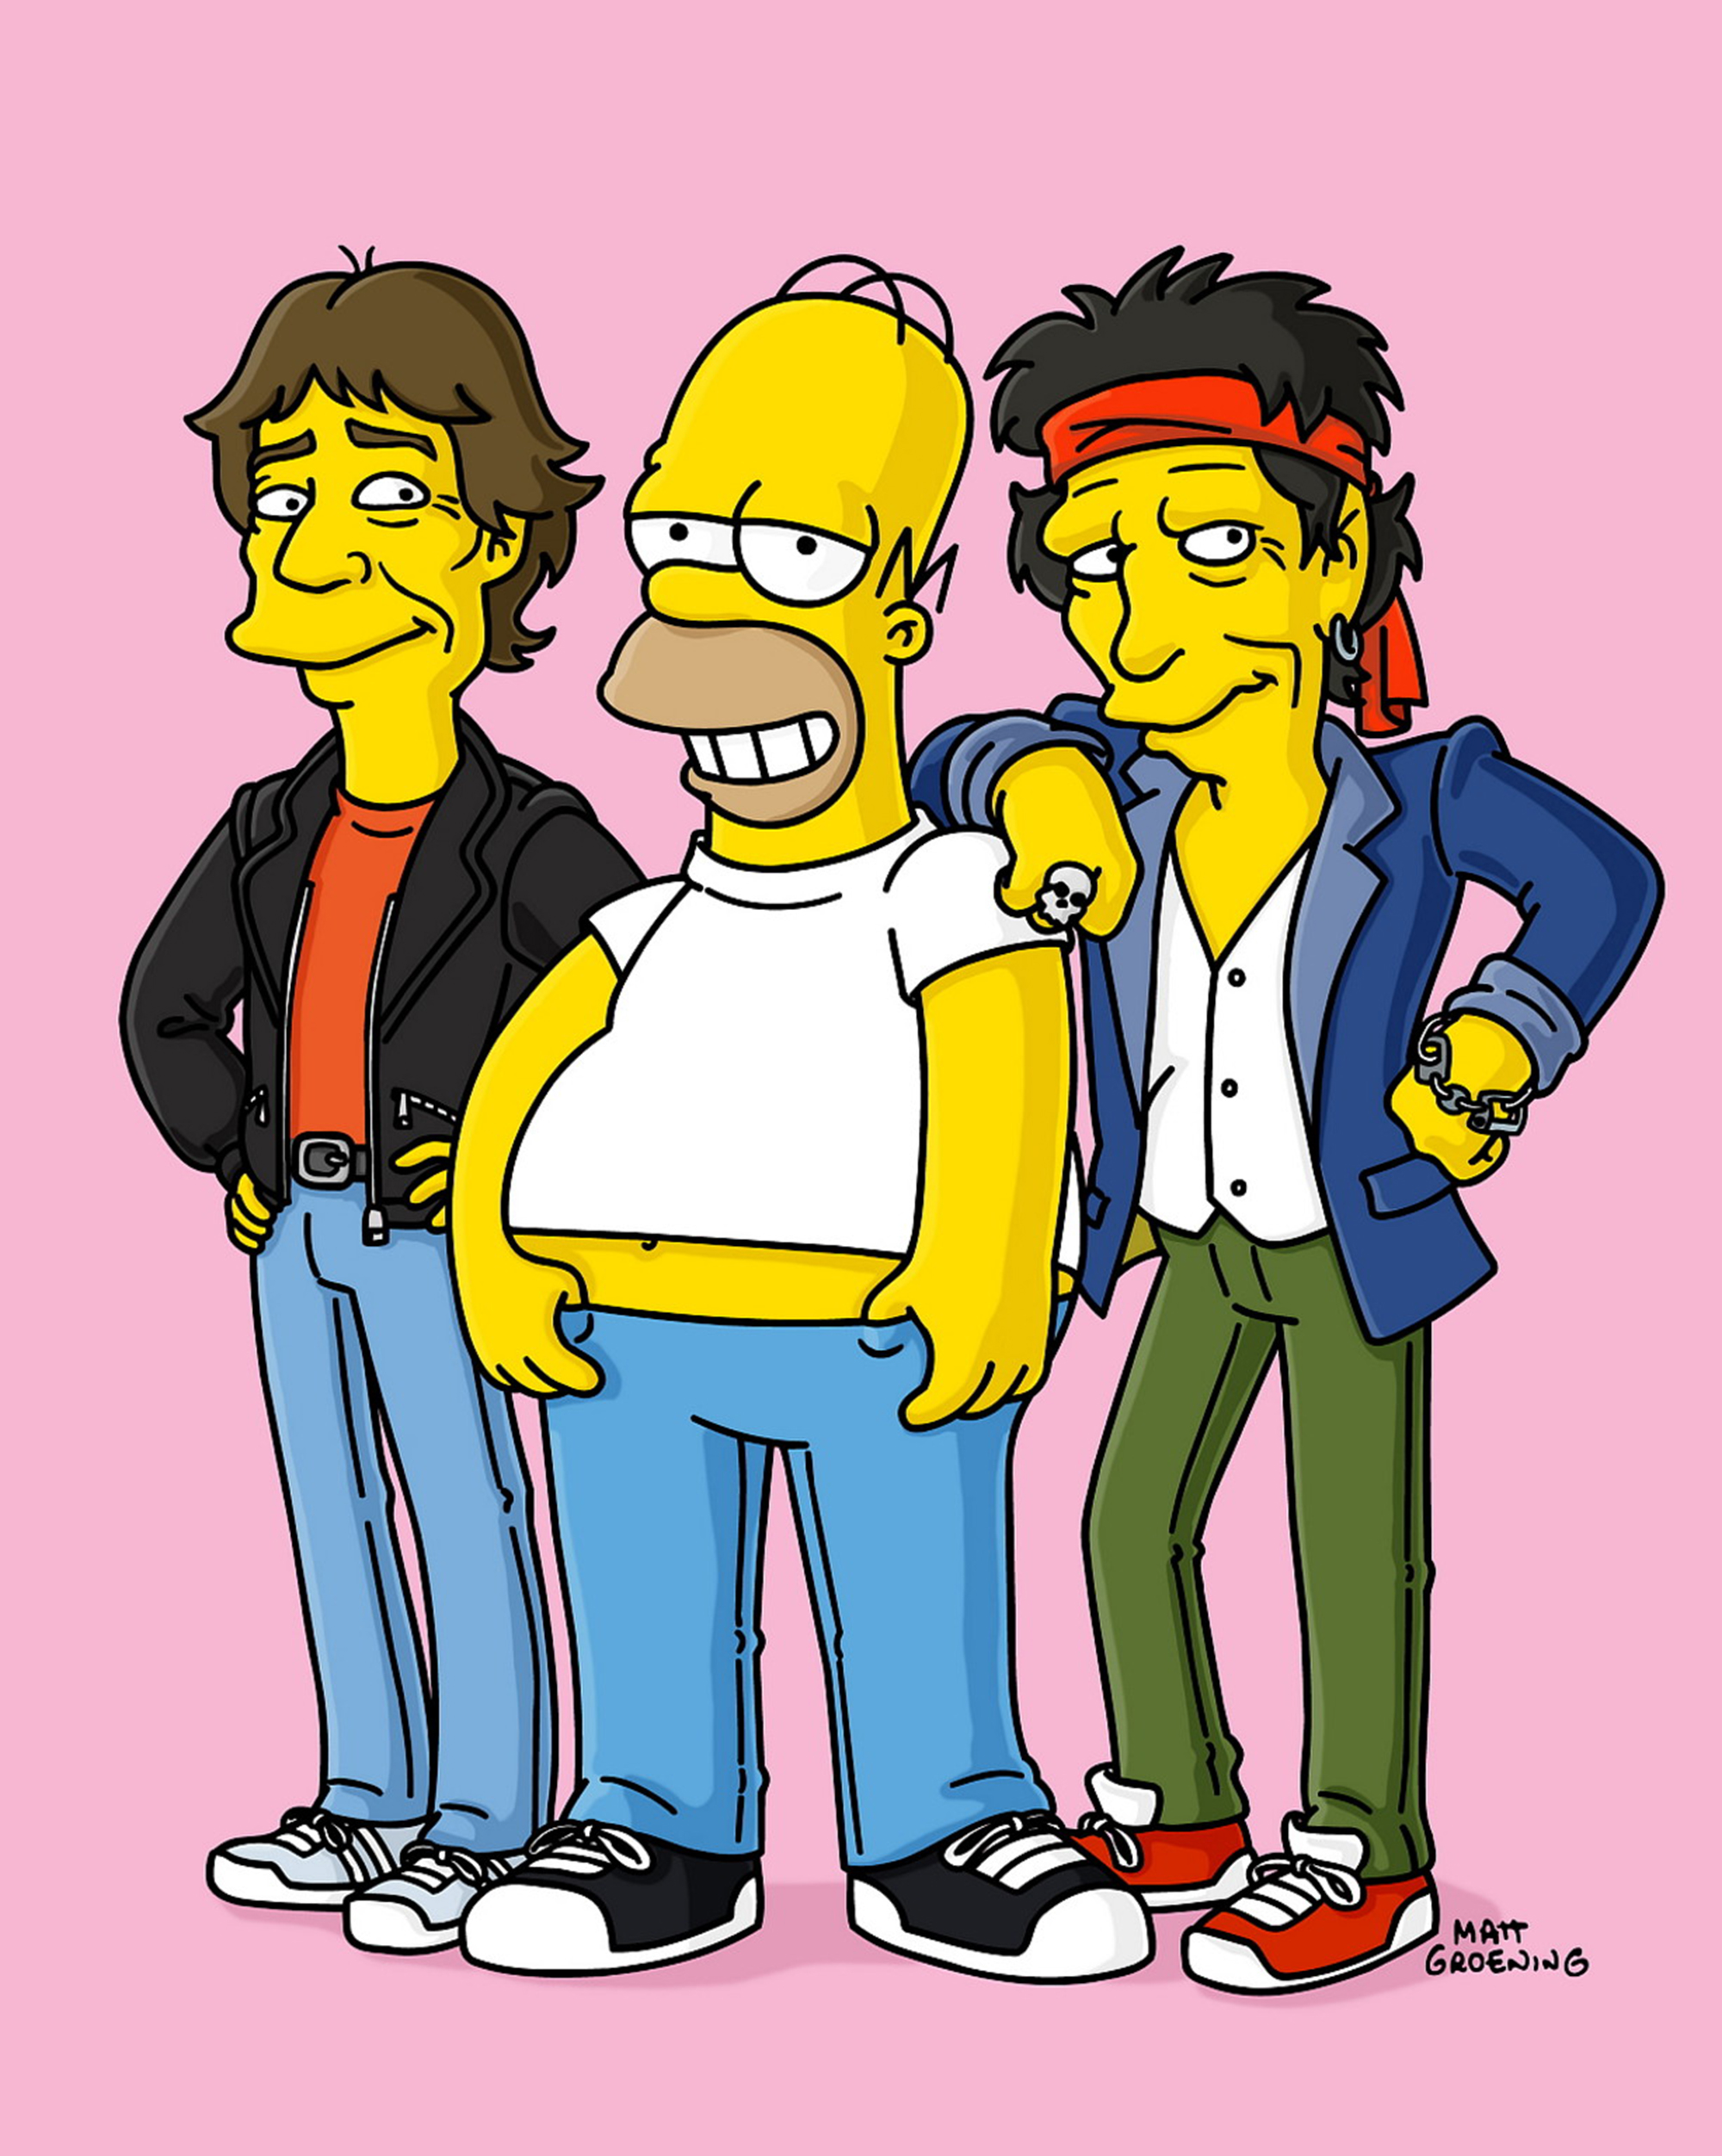 """<b>Mick Jagger/Keith Richards:</b> The Rolling Stones rockers make cameos as themselves in """"How I Spent My Strummer Vacation"""" in 2002, when Homer Simpson is sent to a rock and roll fantasy camp so he can attempt to live out his childhood dreams."""